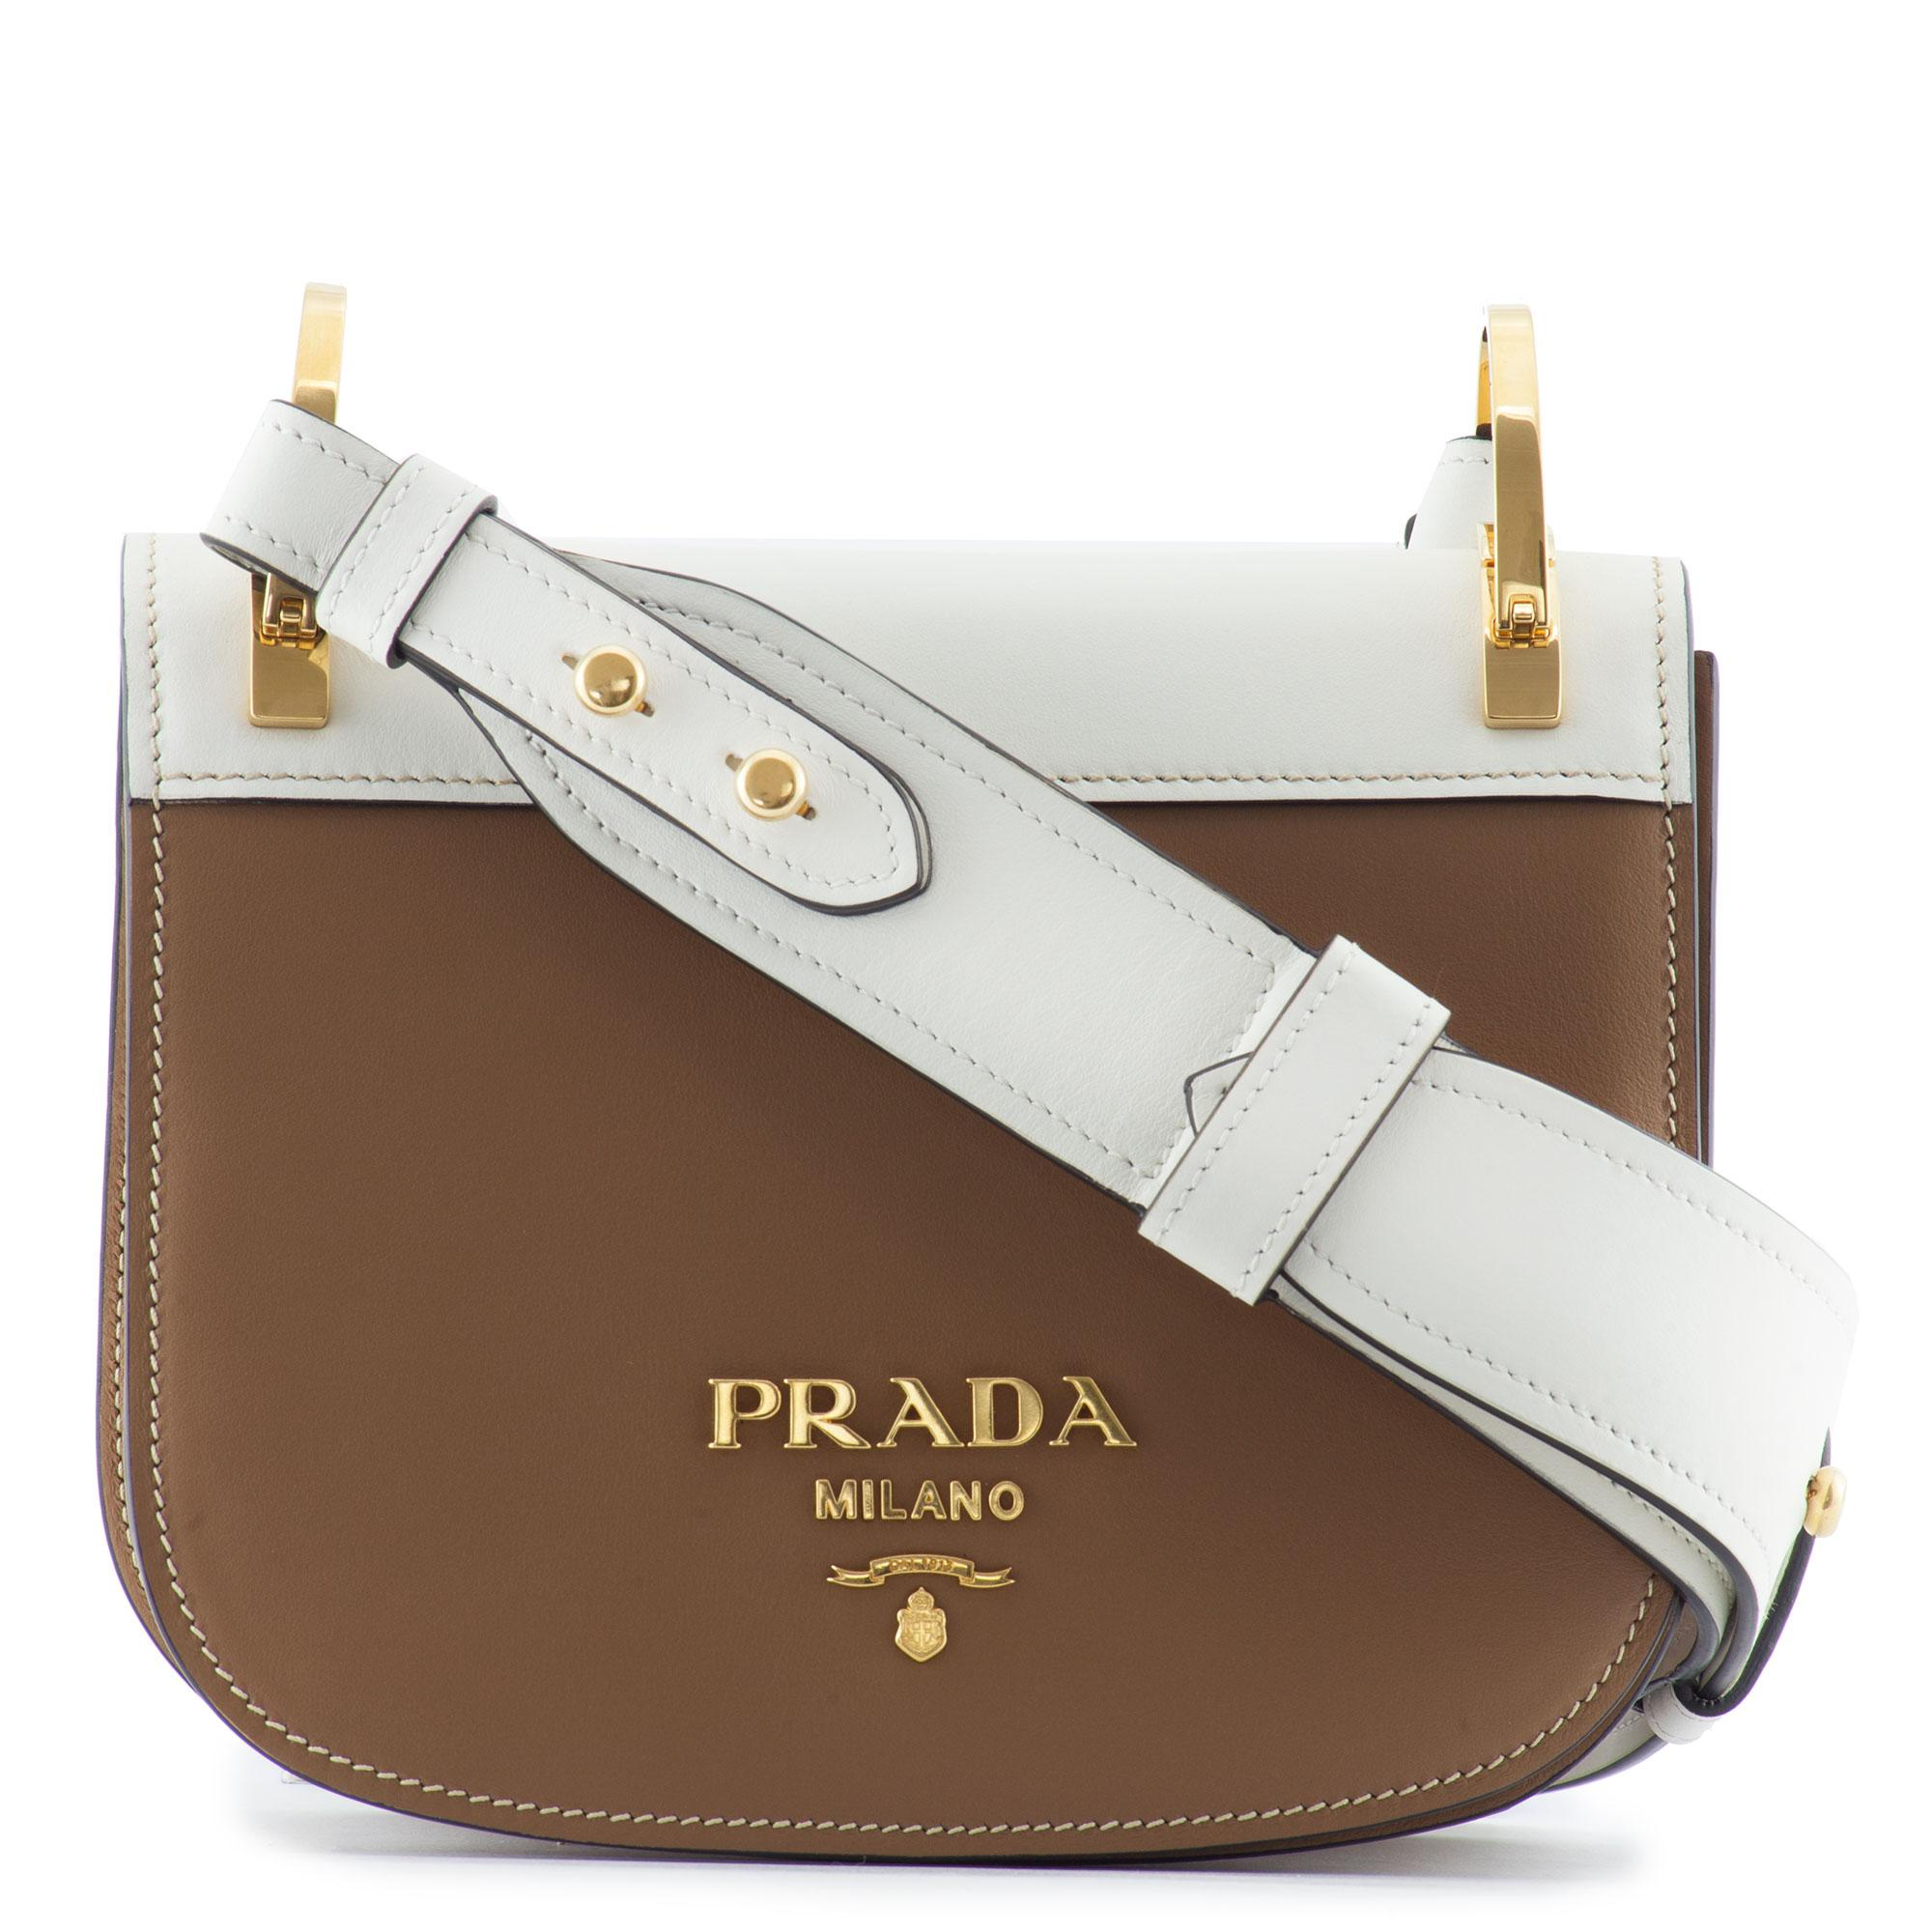 0c7a02857140ee Prada Saddle Bag Brown | Stanford Center for Opportunity Policy in ...